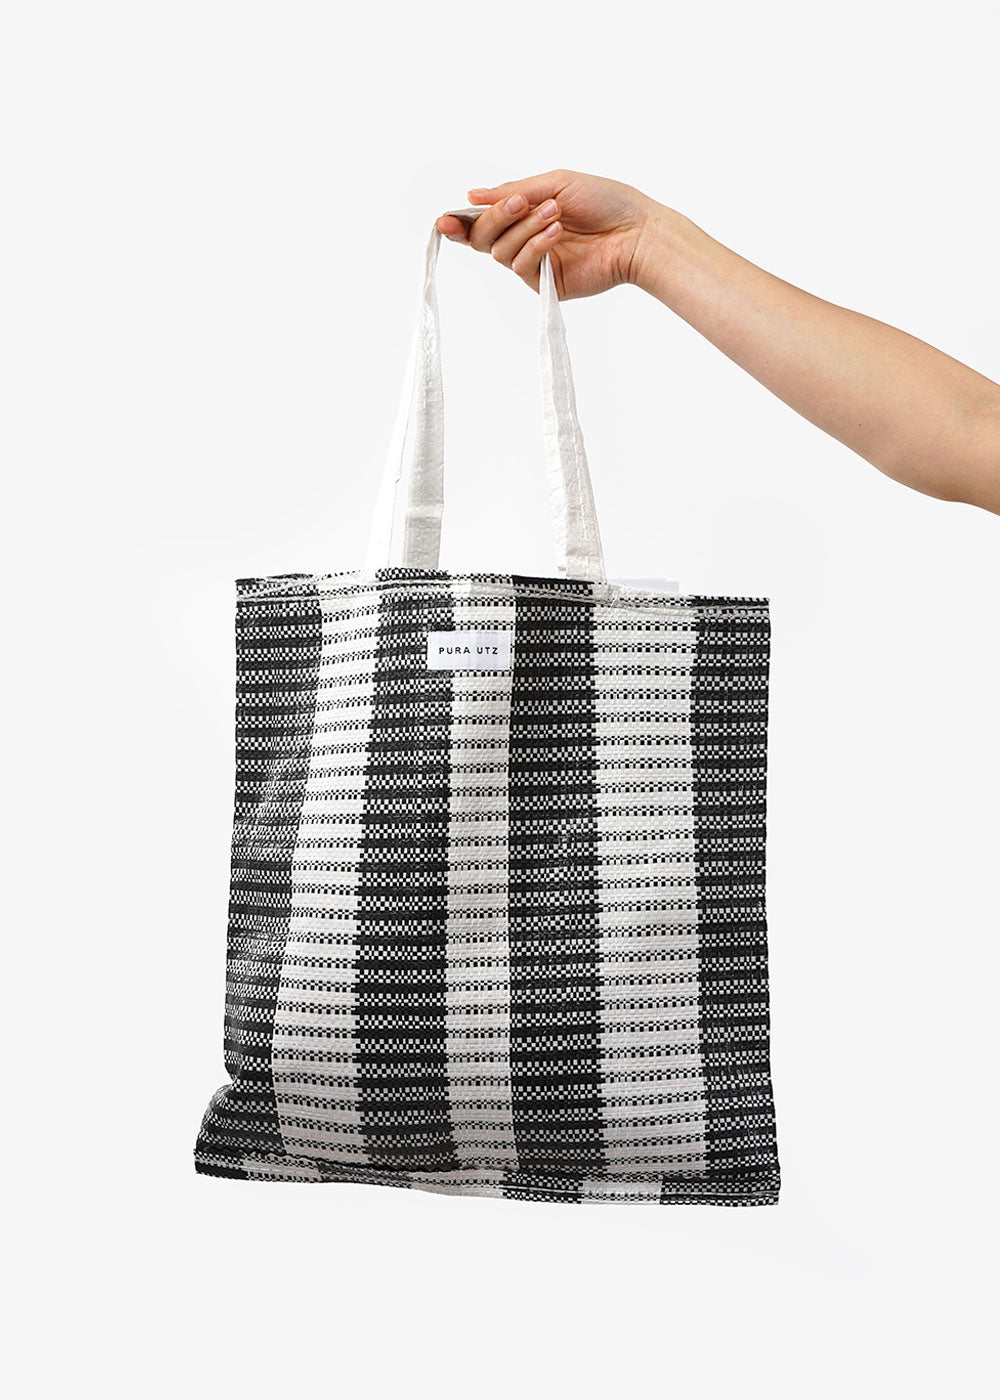 Pura Utz Black/White Plastic Tote — Shop sustainable fashion and slow fashion at New Classics Studios